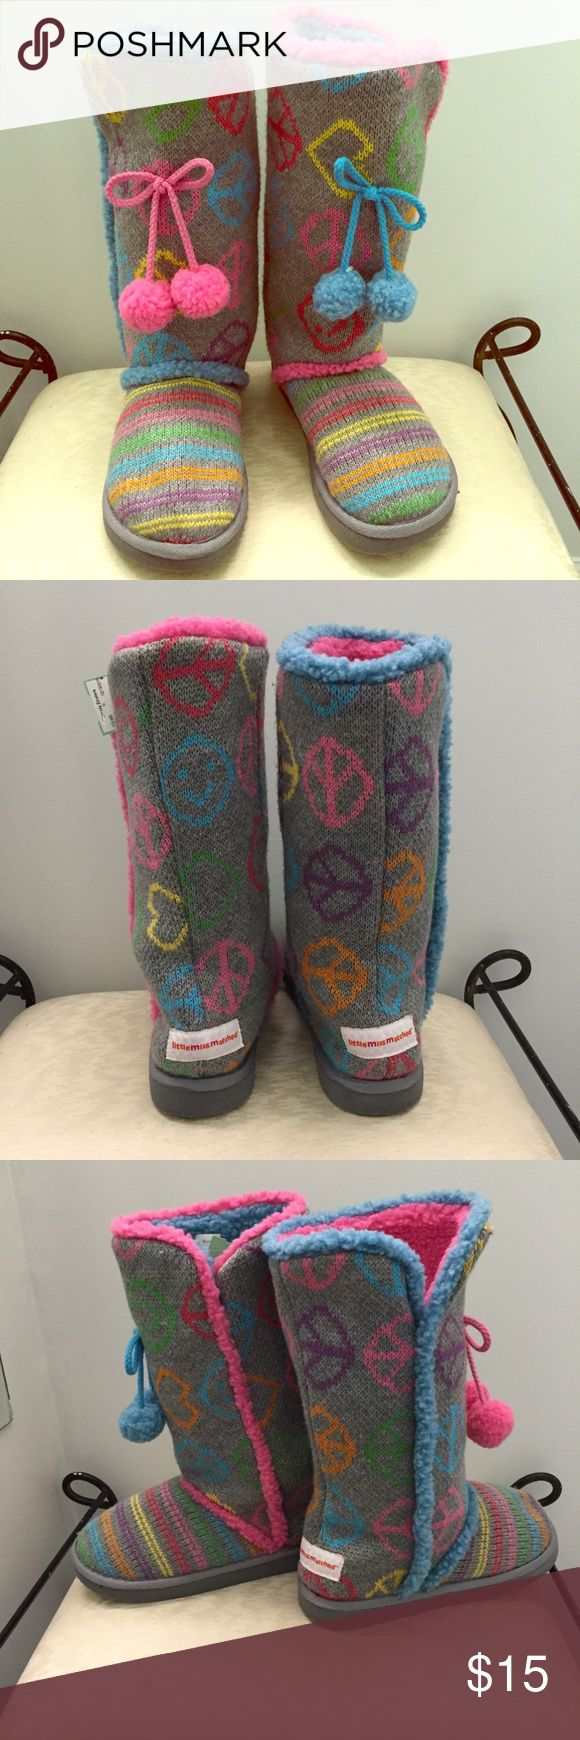 Little Miss Matched Knit Boots / Slippers These boots and/or slippers are in excellent condition. They match, but they don't! Size women's 8. So warm and comfy. Can be worn as a slipper or boot as is has a solid sole. Very clean with no major flaws. Smoke free home. Little Miss Matched Shoes